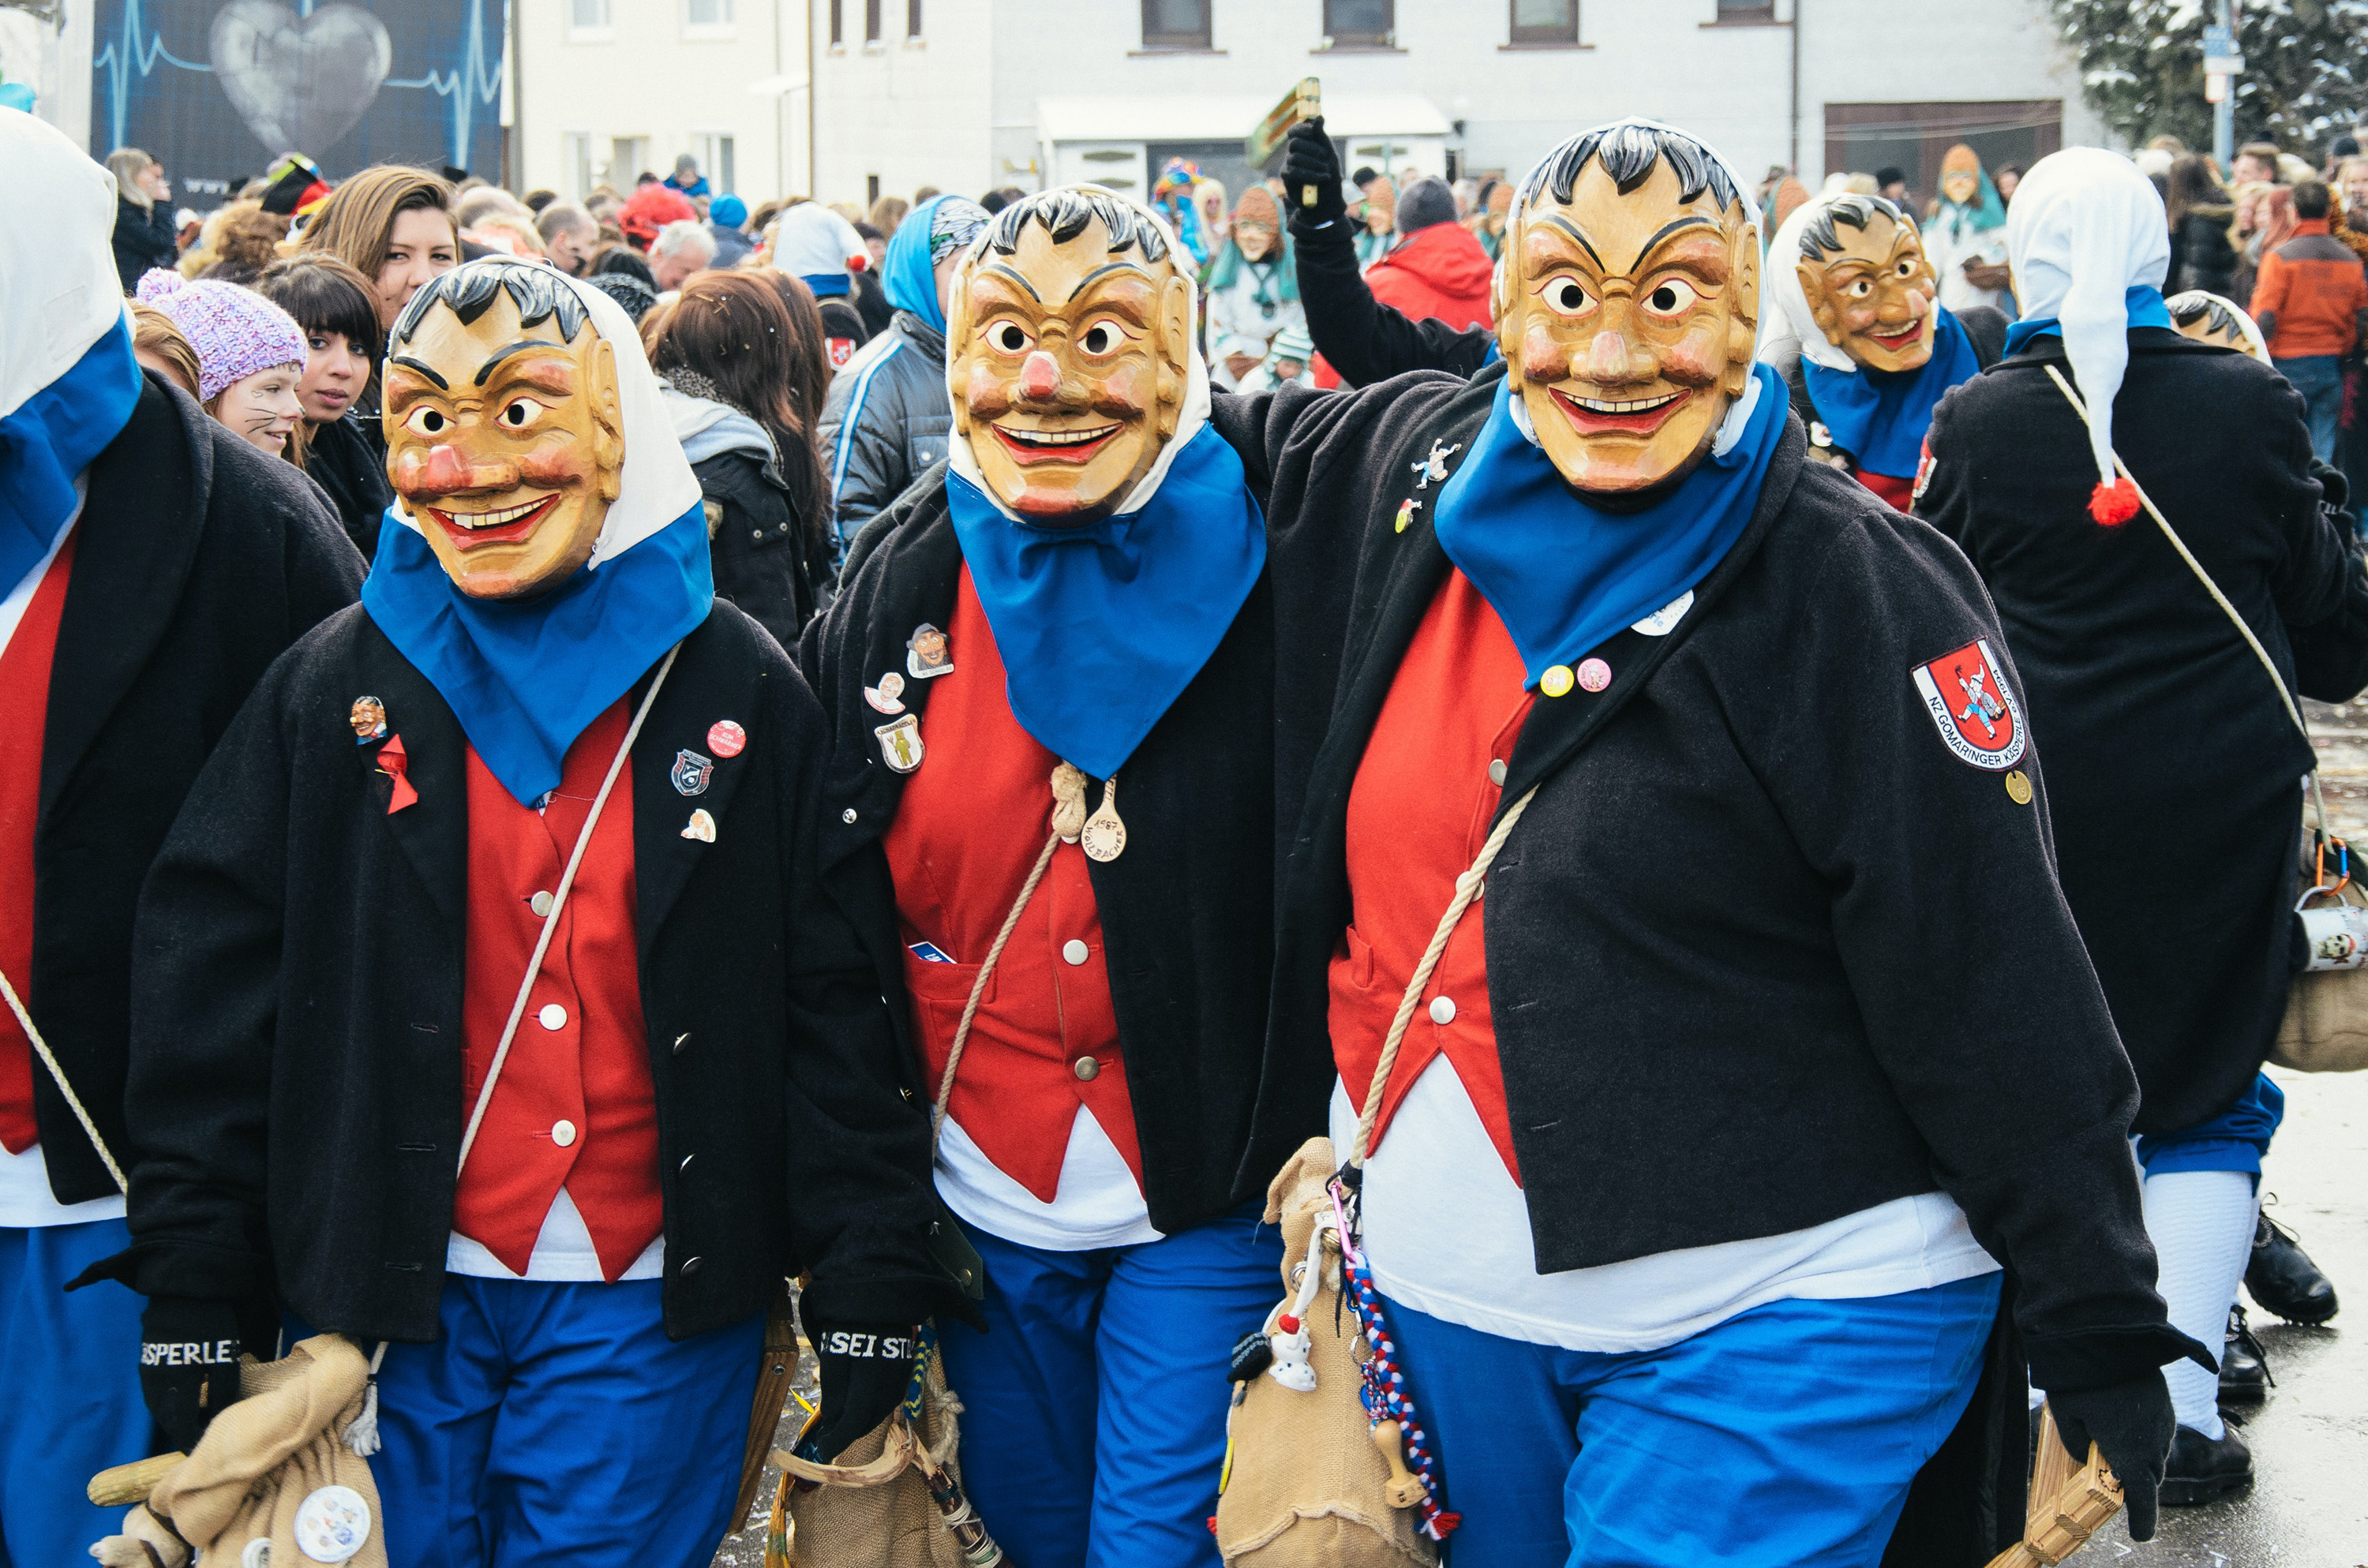 Karneval at Sickengen, Germany